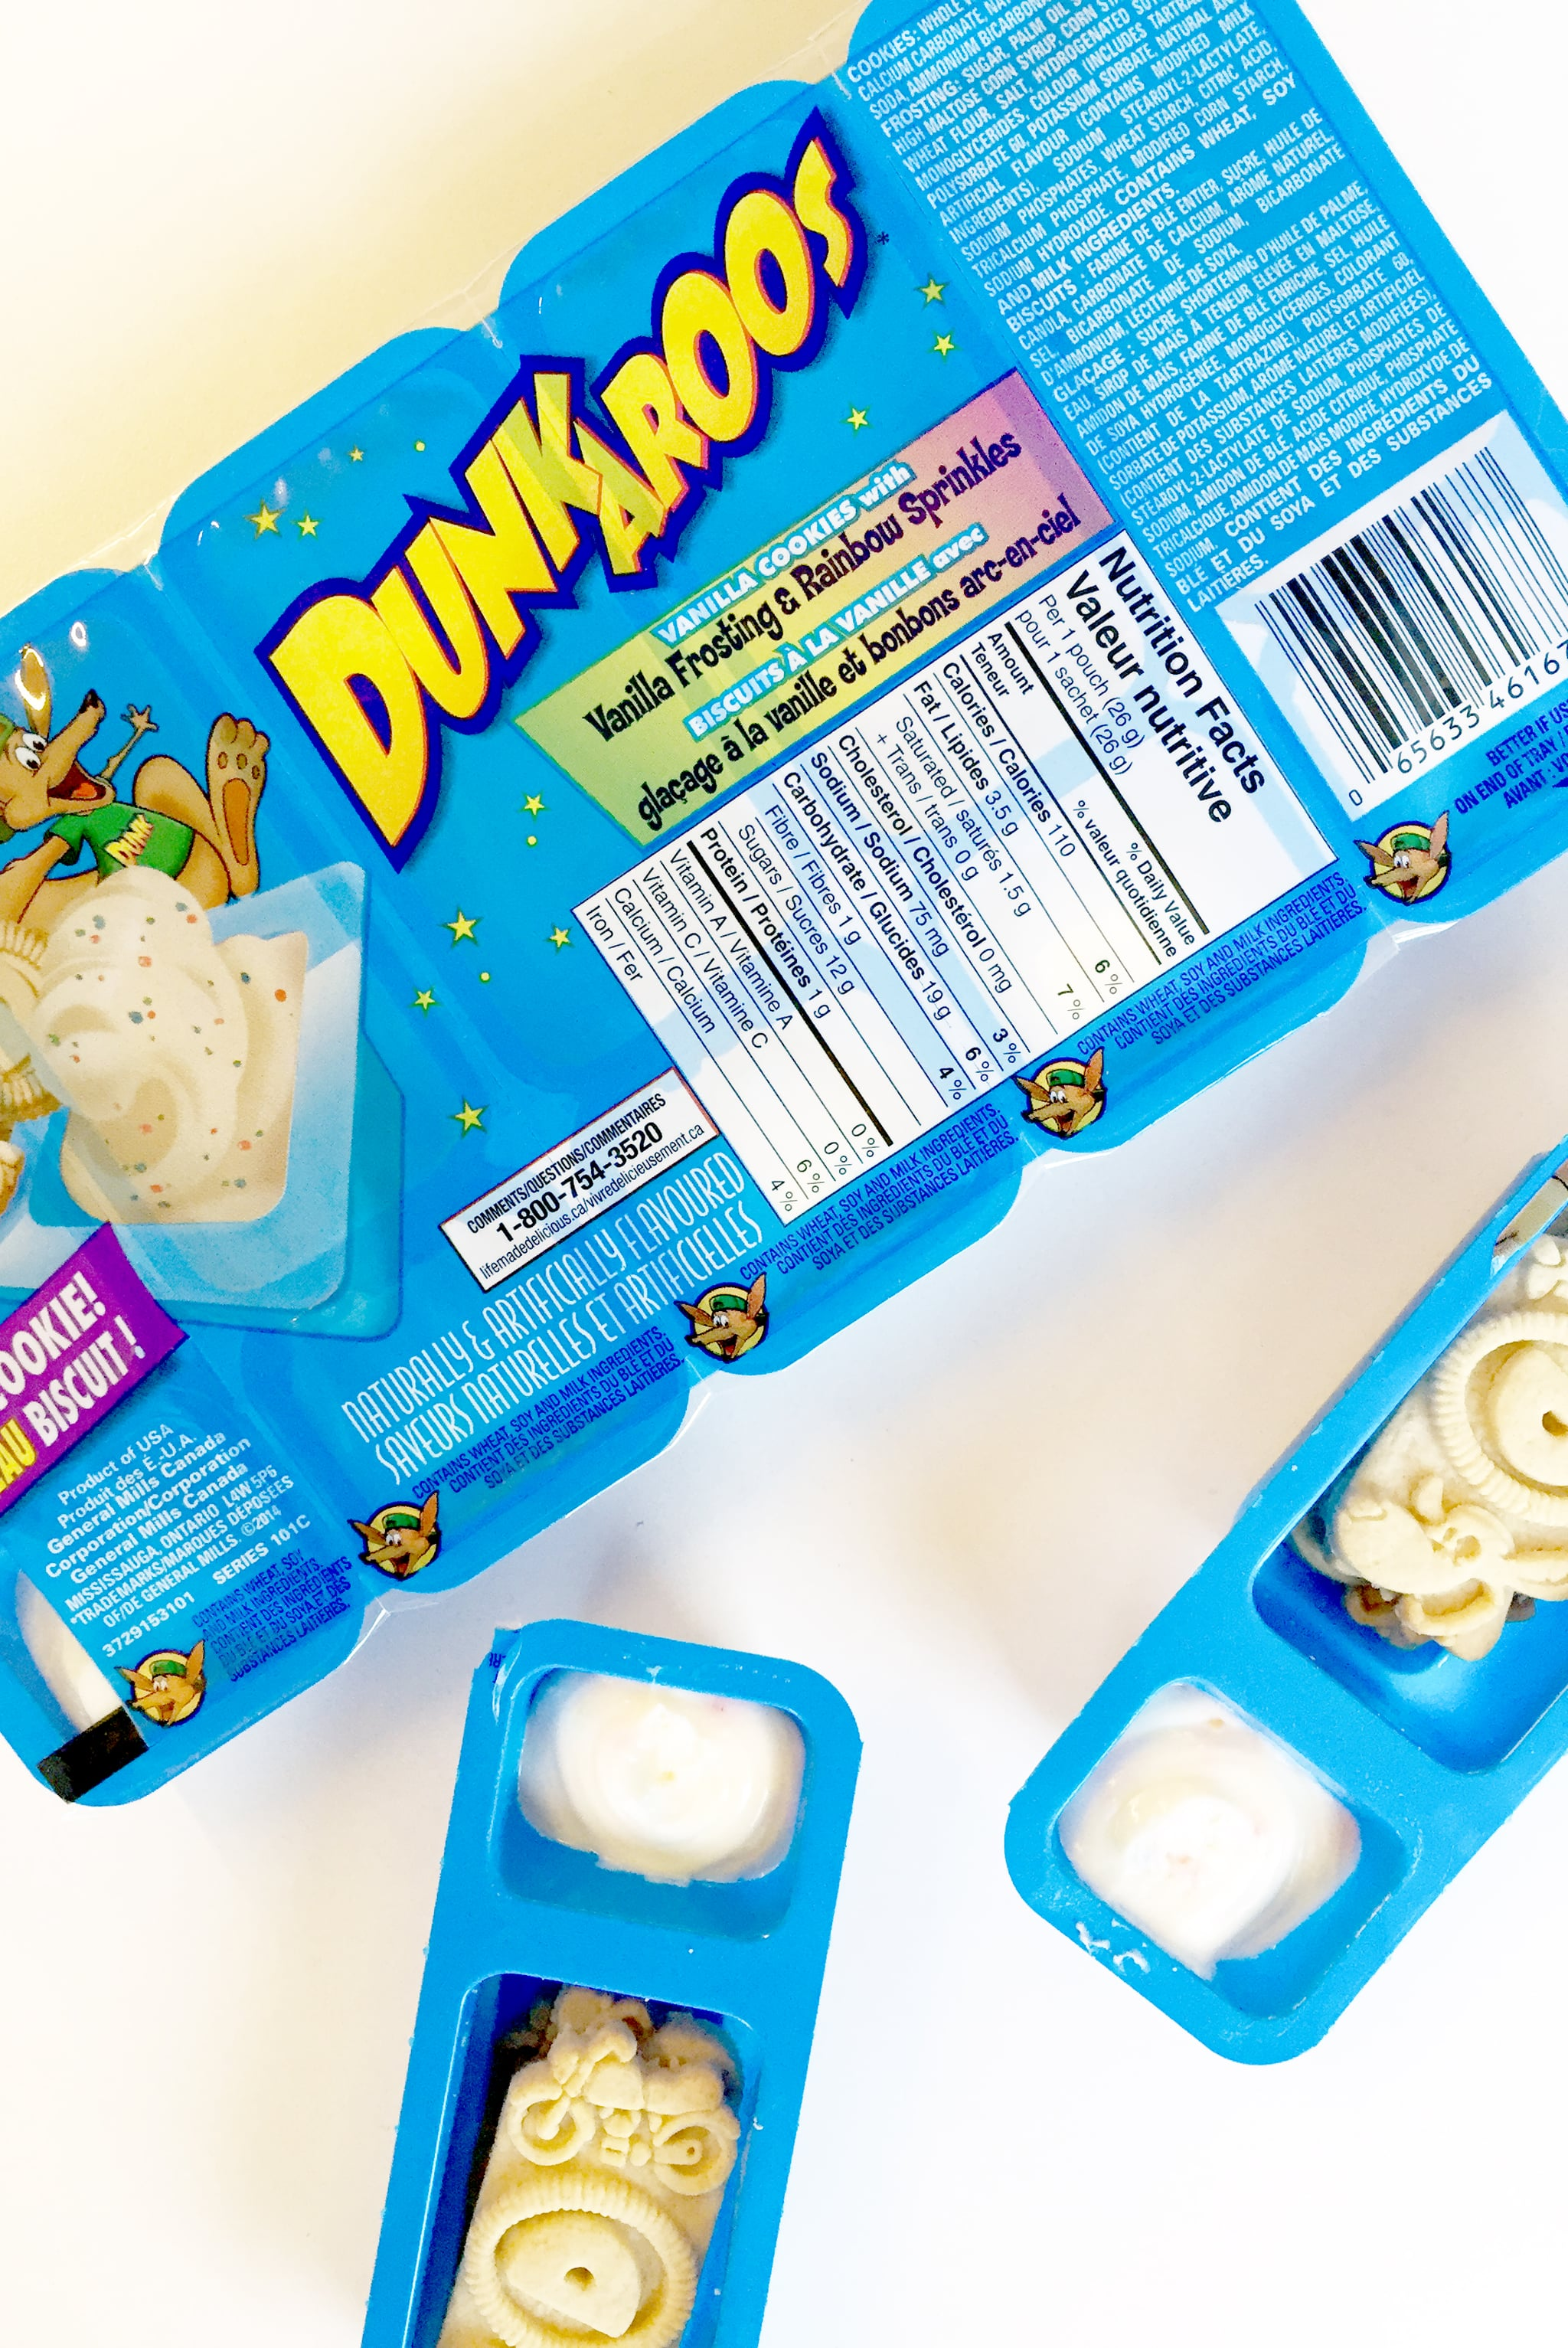 Where Can I Buy German Food In England: Where Can I Buy Dunkaroos?